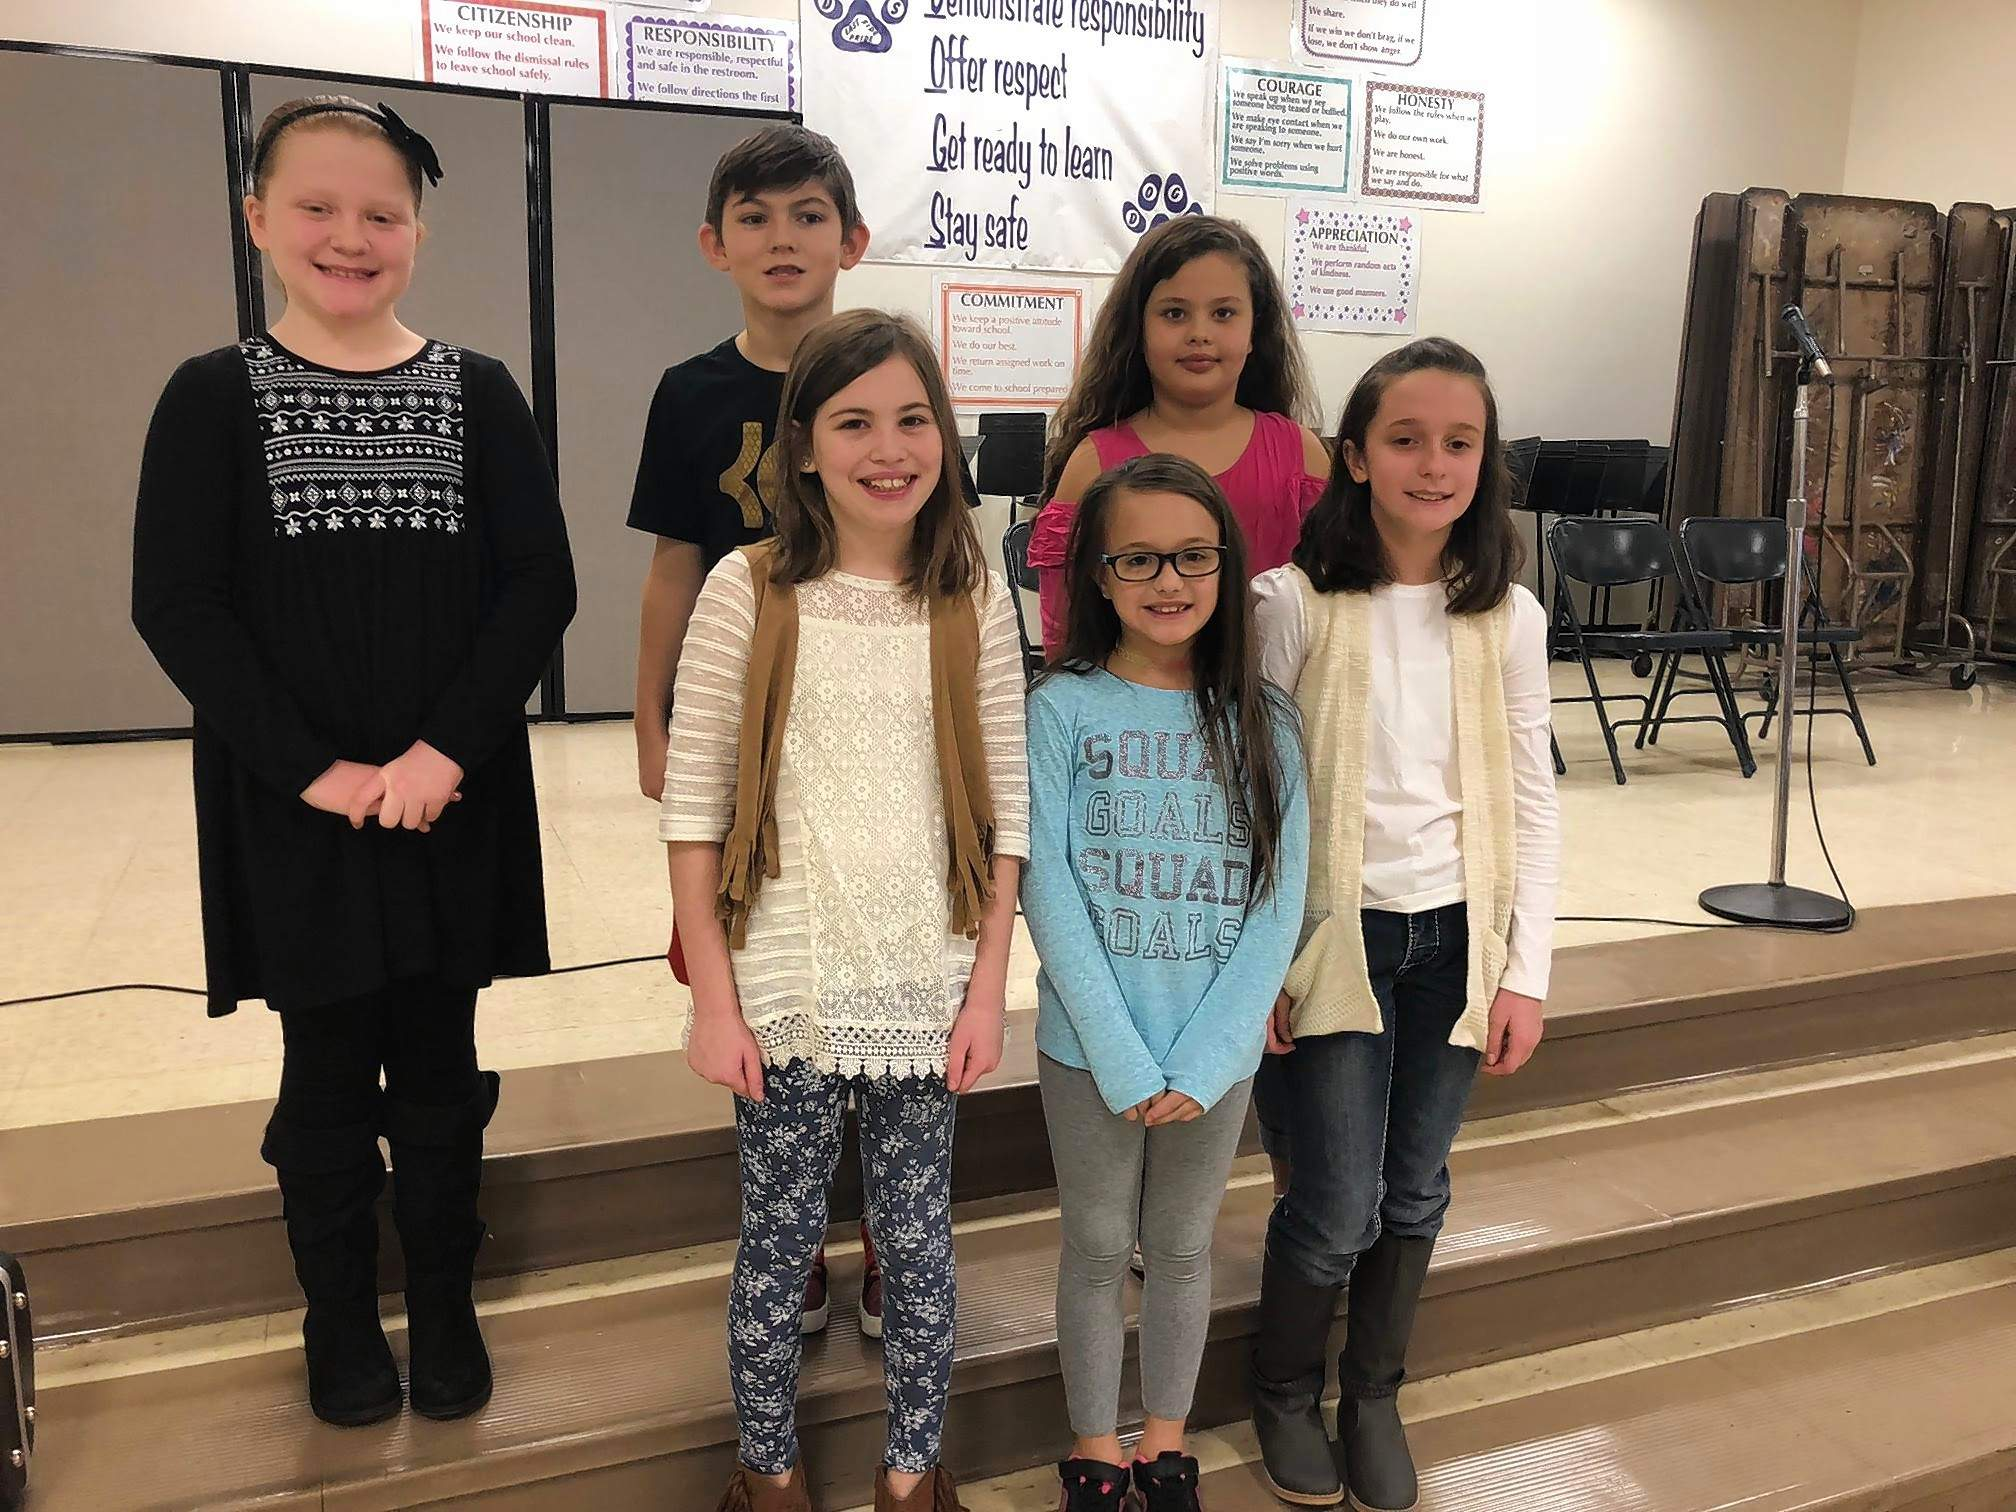 East Side Intermediate School spelling bee participants were: Front Row: Kaylee Vinson, Toree Wallace, and Cora Patterson. Back Row: Hadley Hunt, Dathan Case, and Layla Scott.